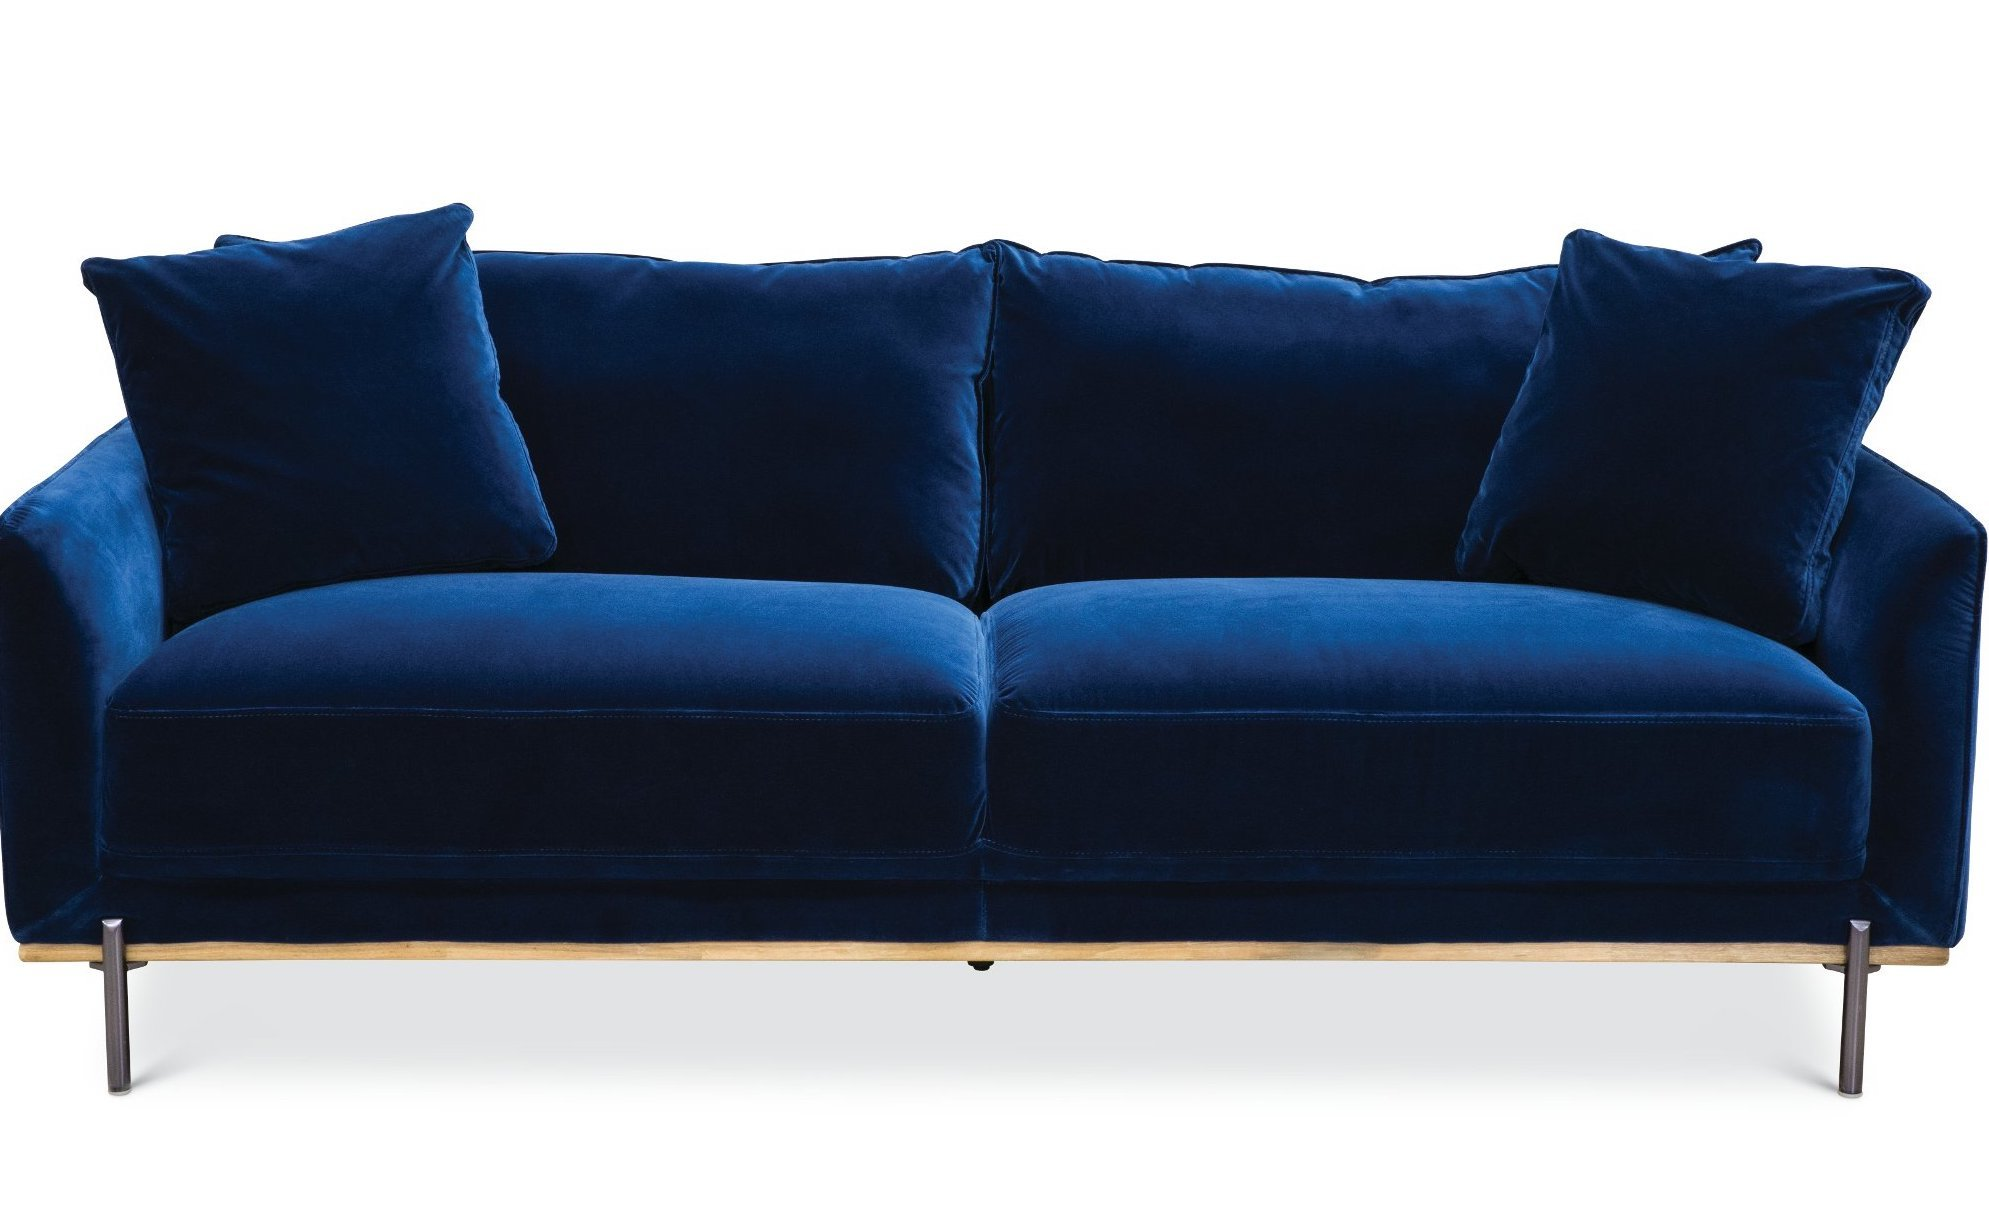 royal blue velvet sofa small leather favorite rc willey 39s blog